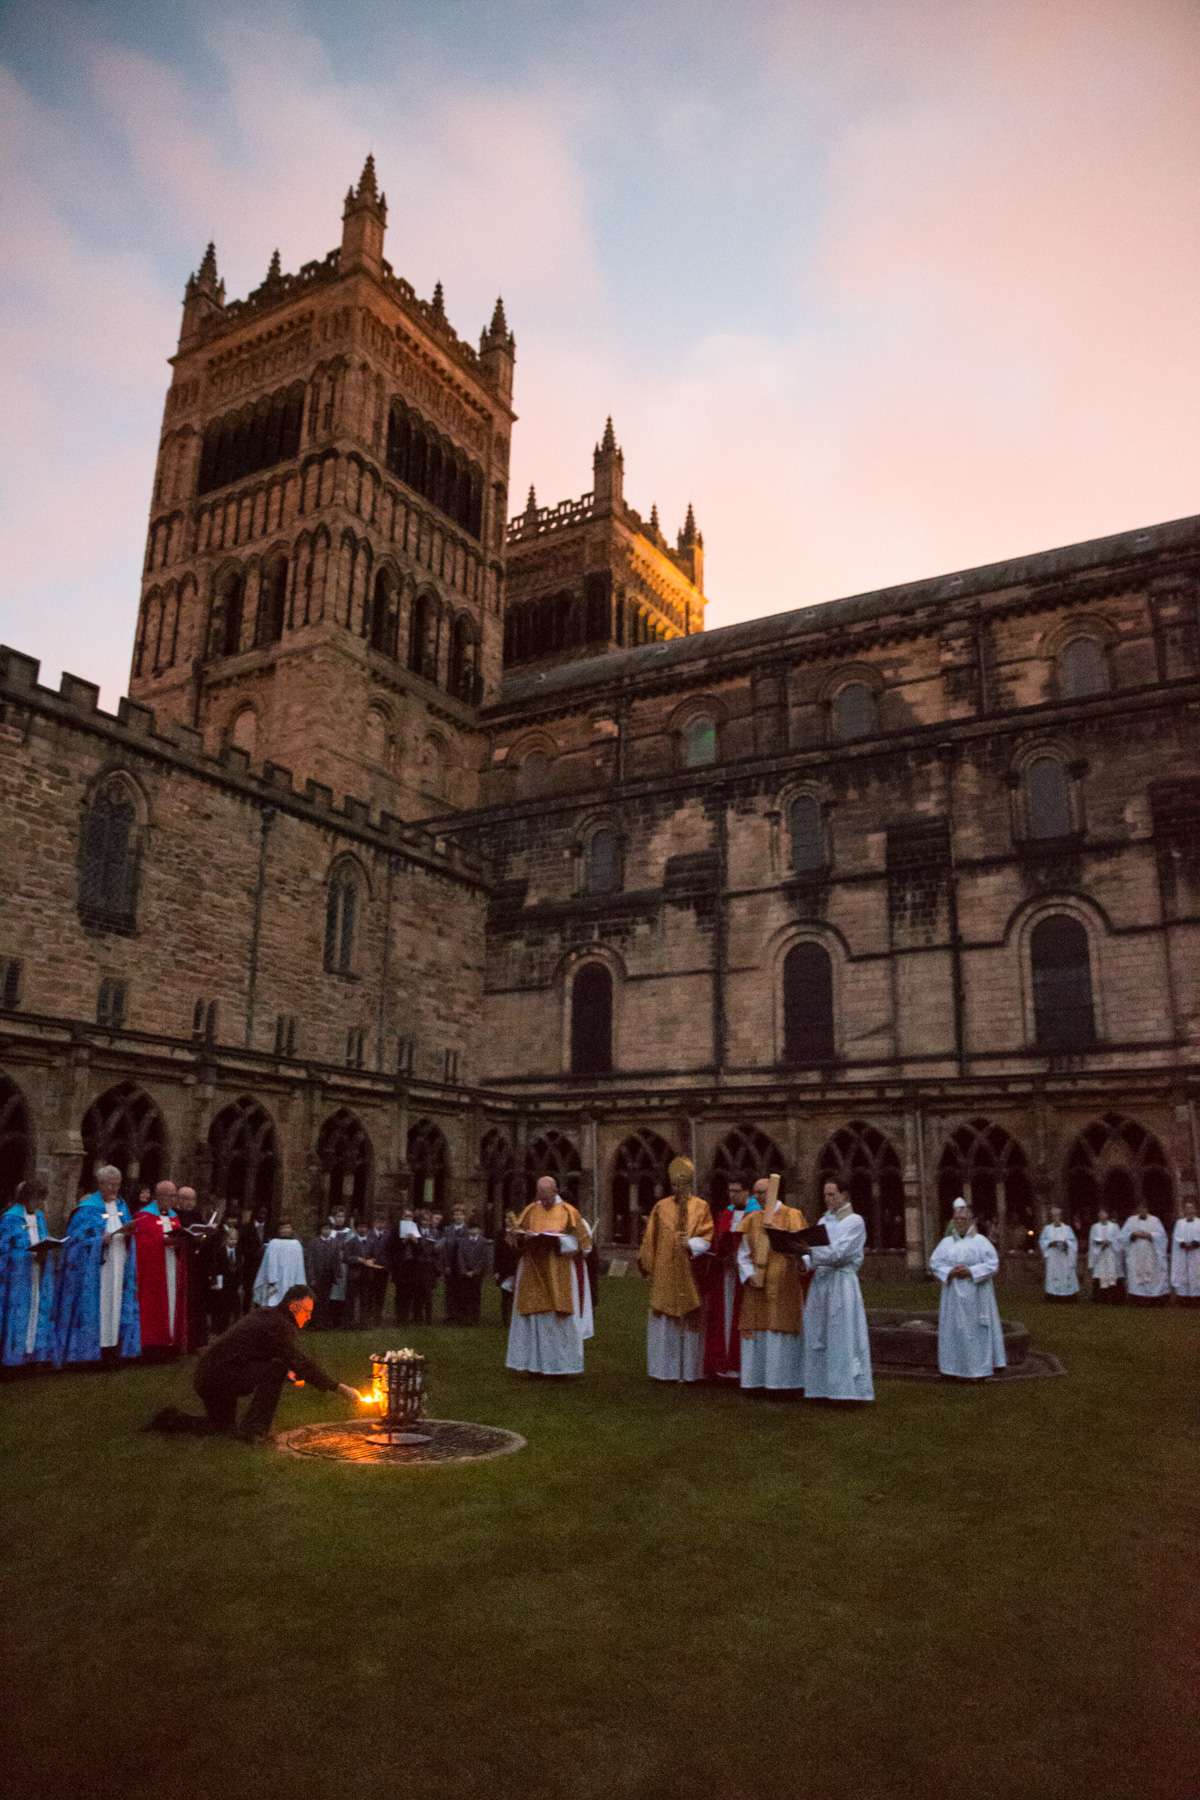 Easter dawn vigil outside Durham Cathedral